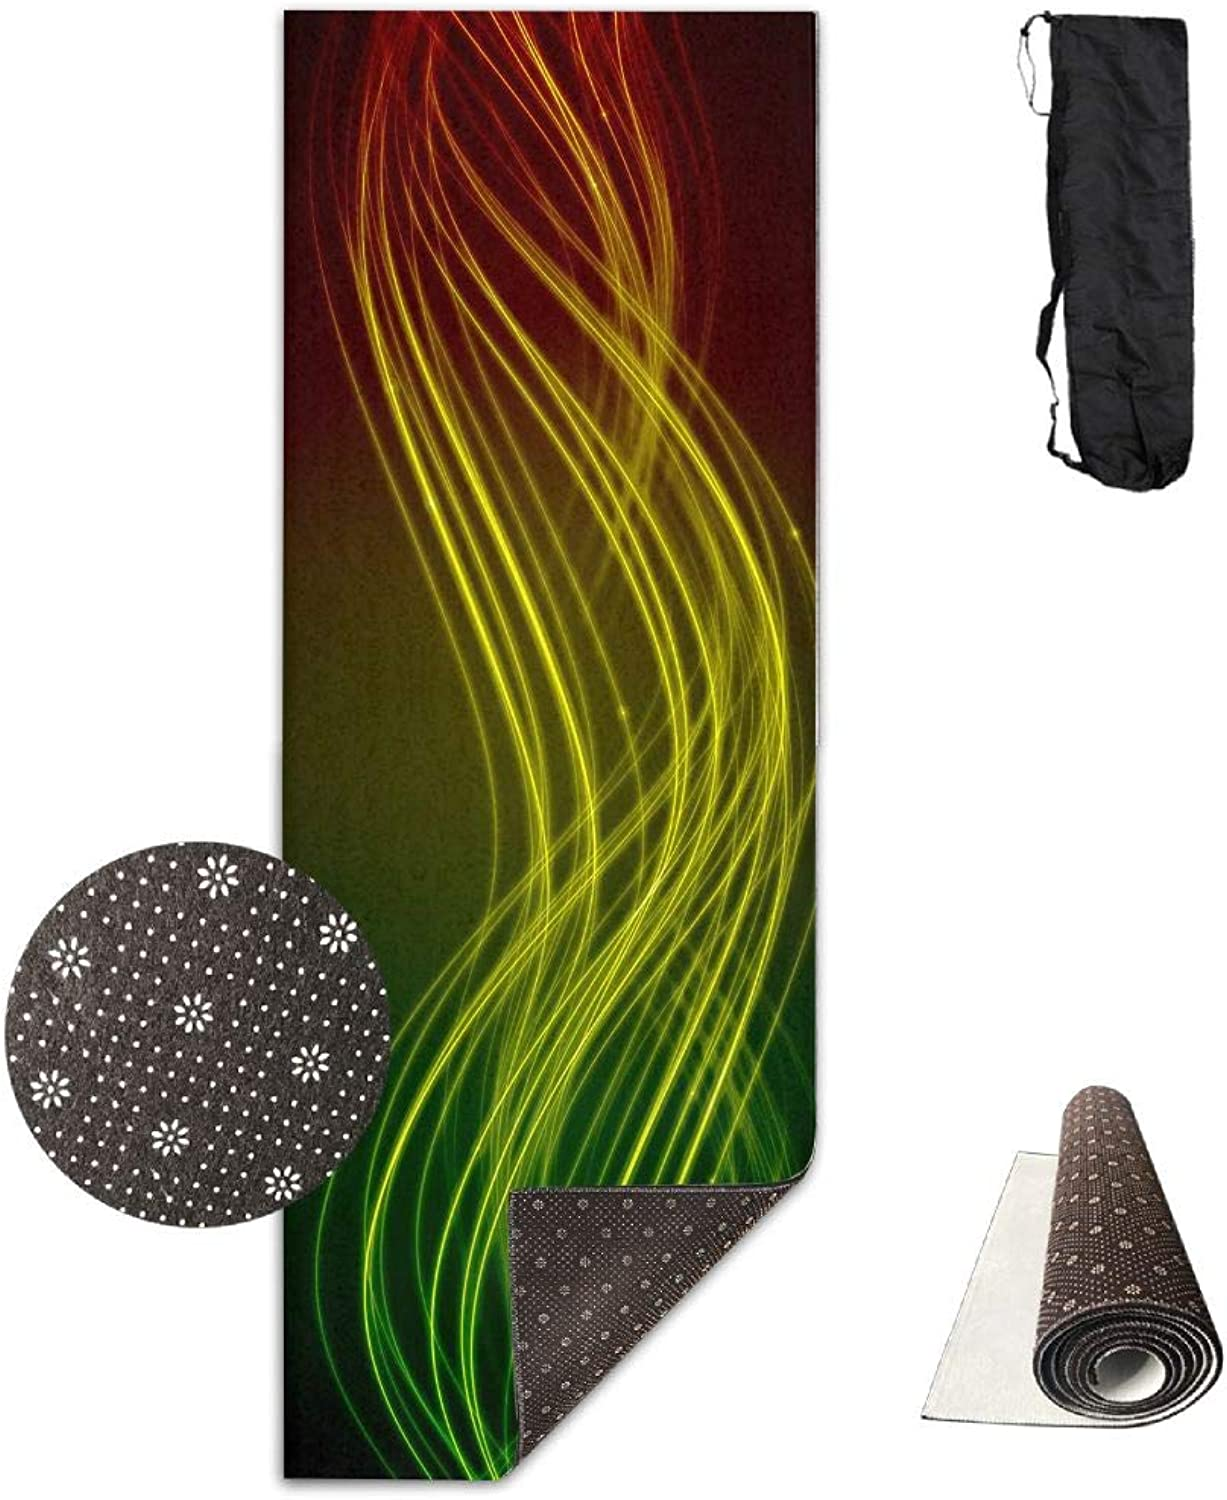 Yoga Mat Non Slip 24  X 71  Exercise Mats Abstract Lines Premium Fitness Pilates Carrying Strap